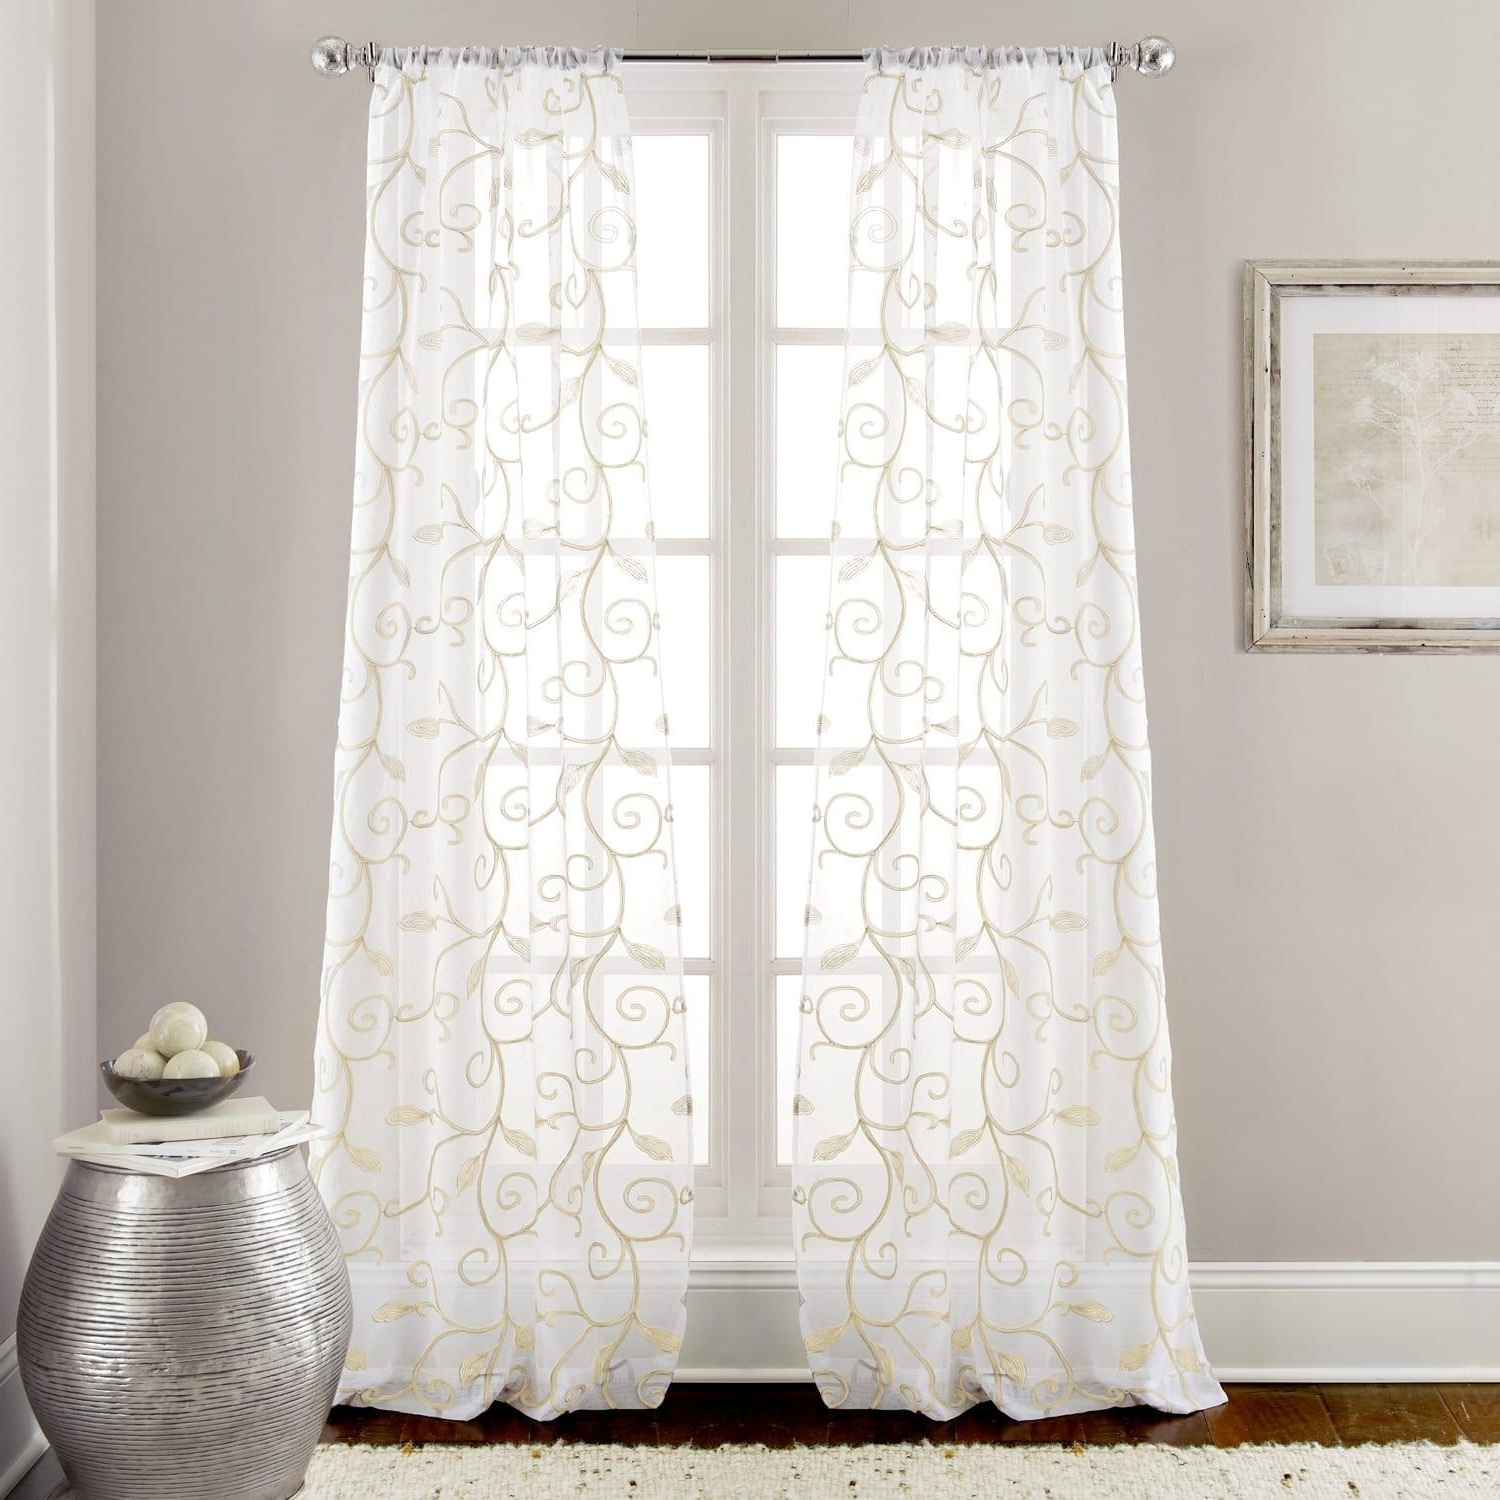 Overseas Faux Silk Blackout Curtain Panel Pairs In Most Current Amrapur Overseas Leaf Swirl Embroidered Curtain Panel Pair (View 13 of 20)